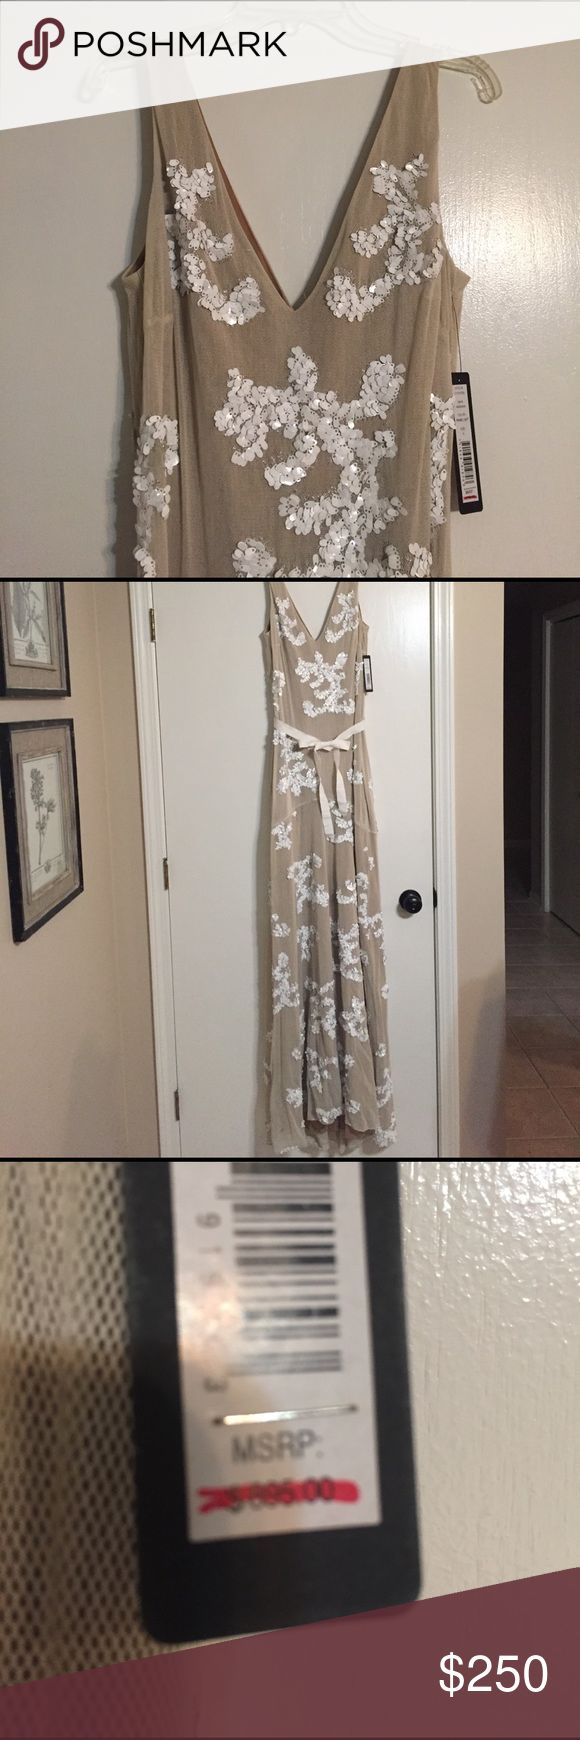 Robert Rodriguez long evening gown camel sequins Stunning Robert Rodriguez cream and white sequined evening gown. New with tags. V-neck front and back. Robert Rodriguez Dresses Maxi